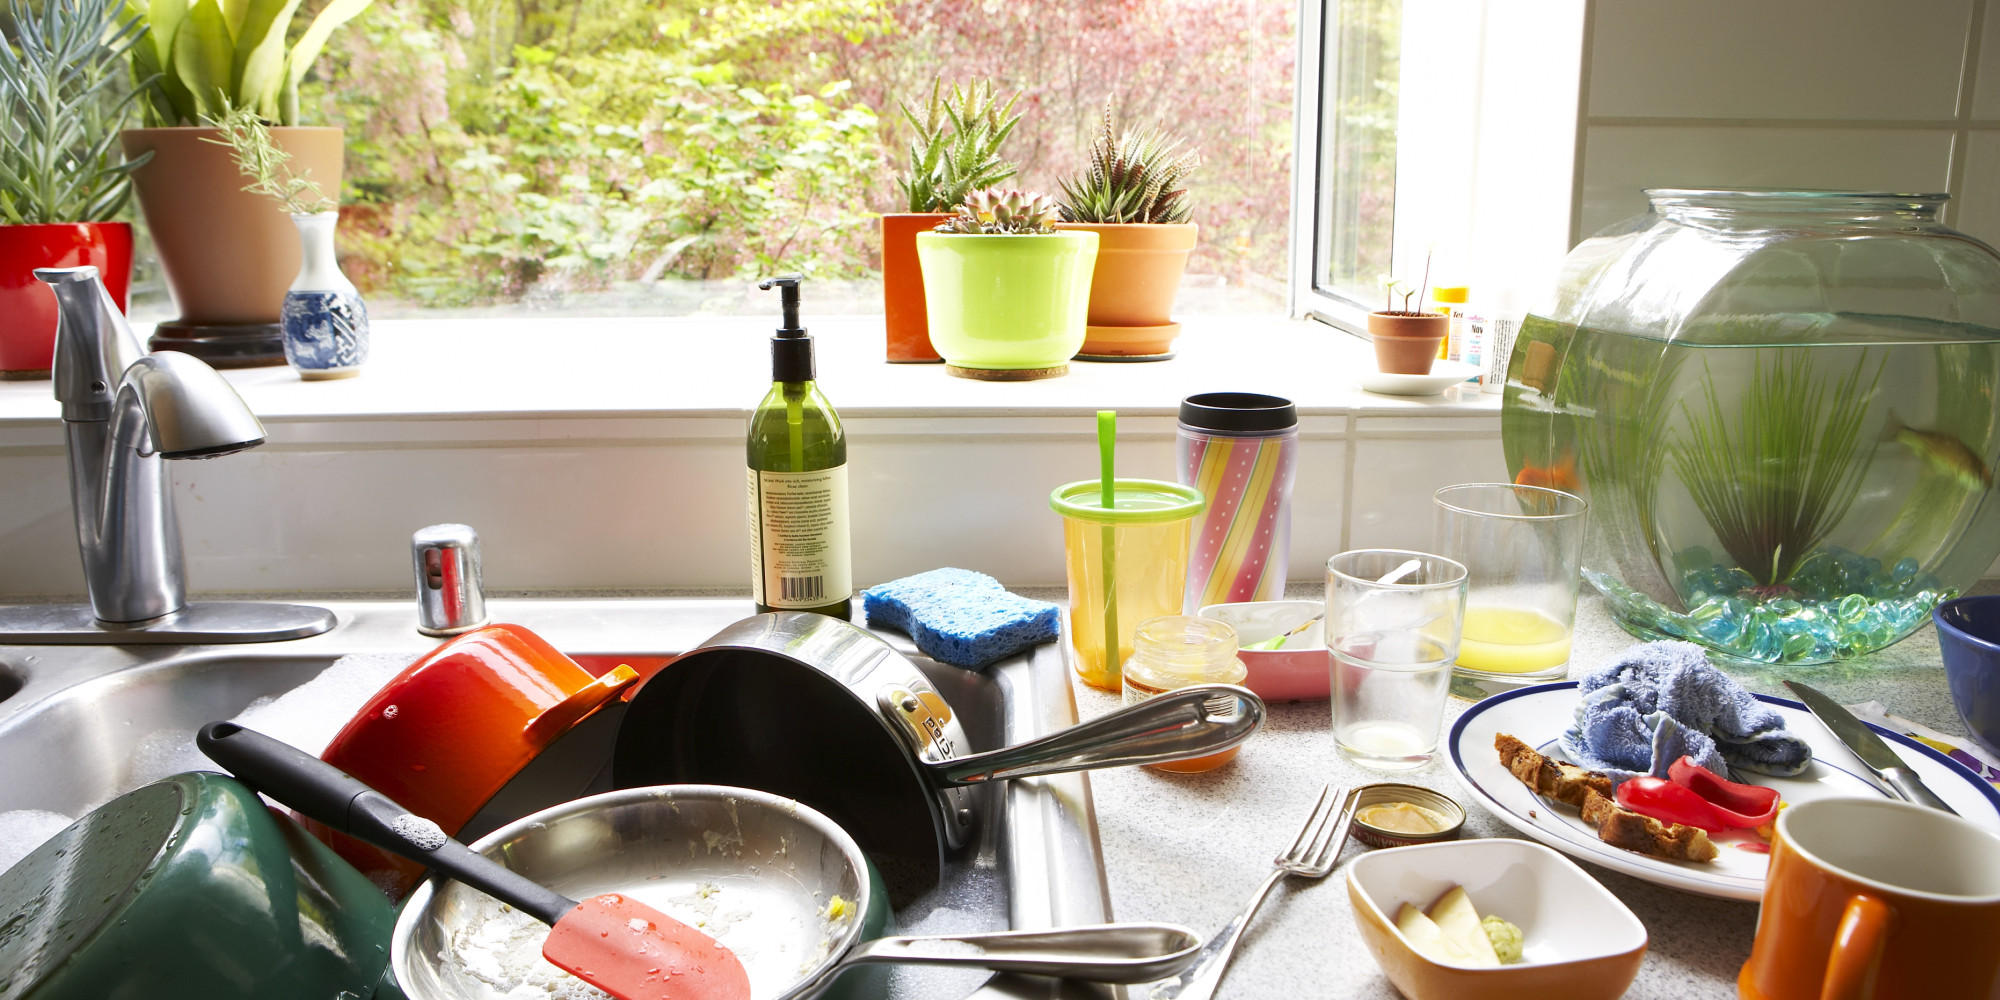 Image result for kitchen mess comic